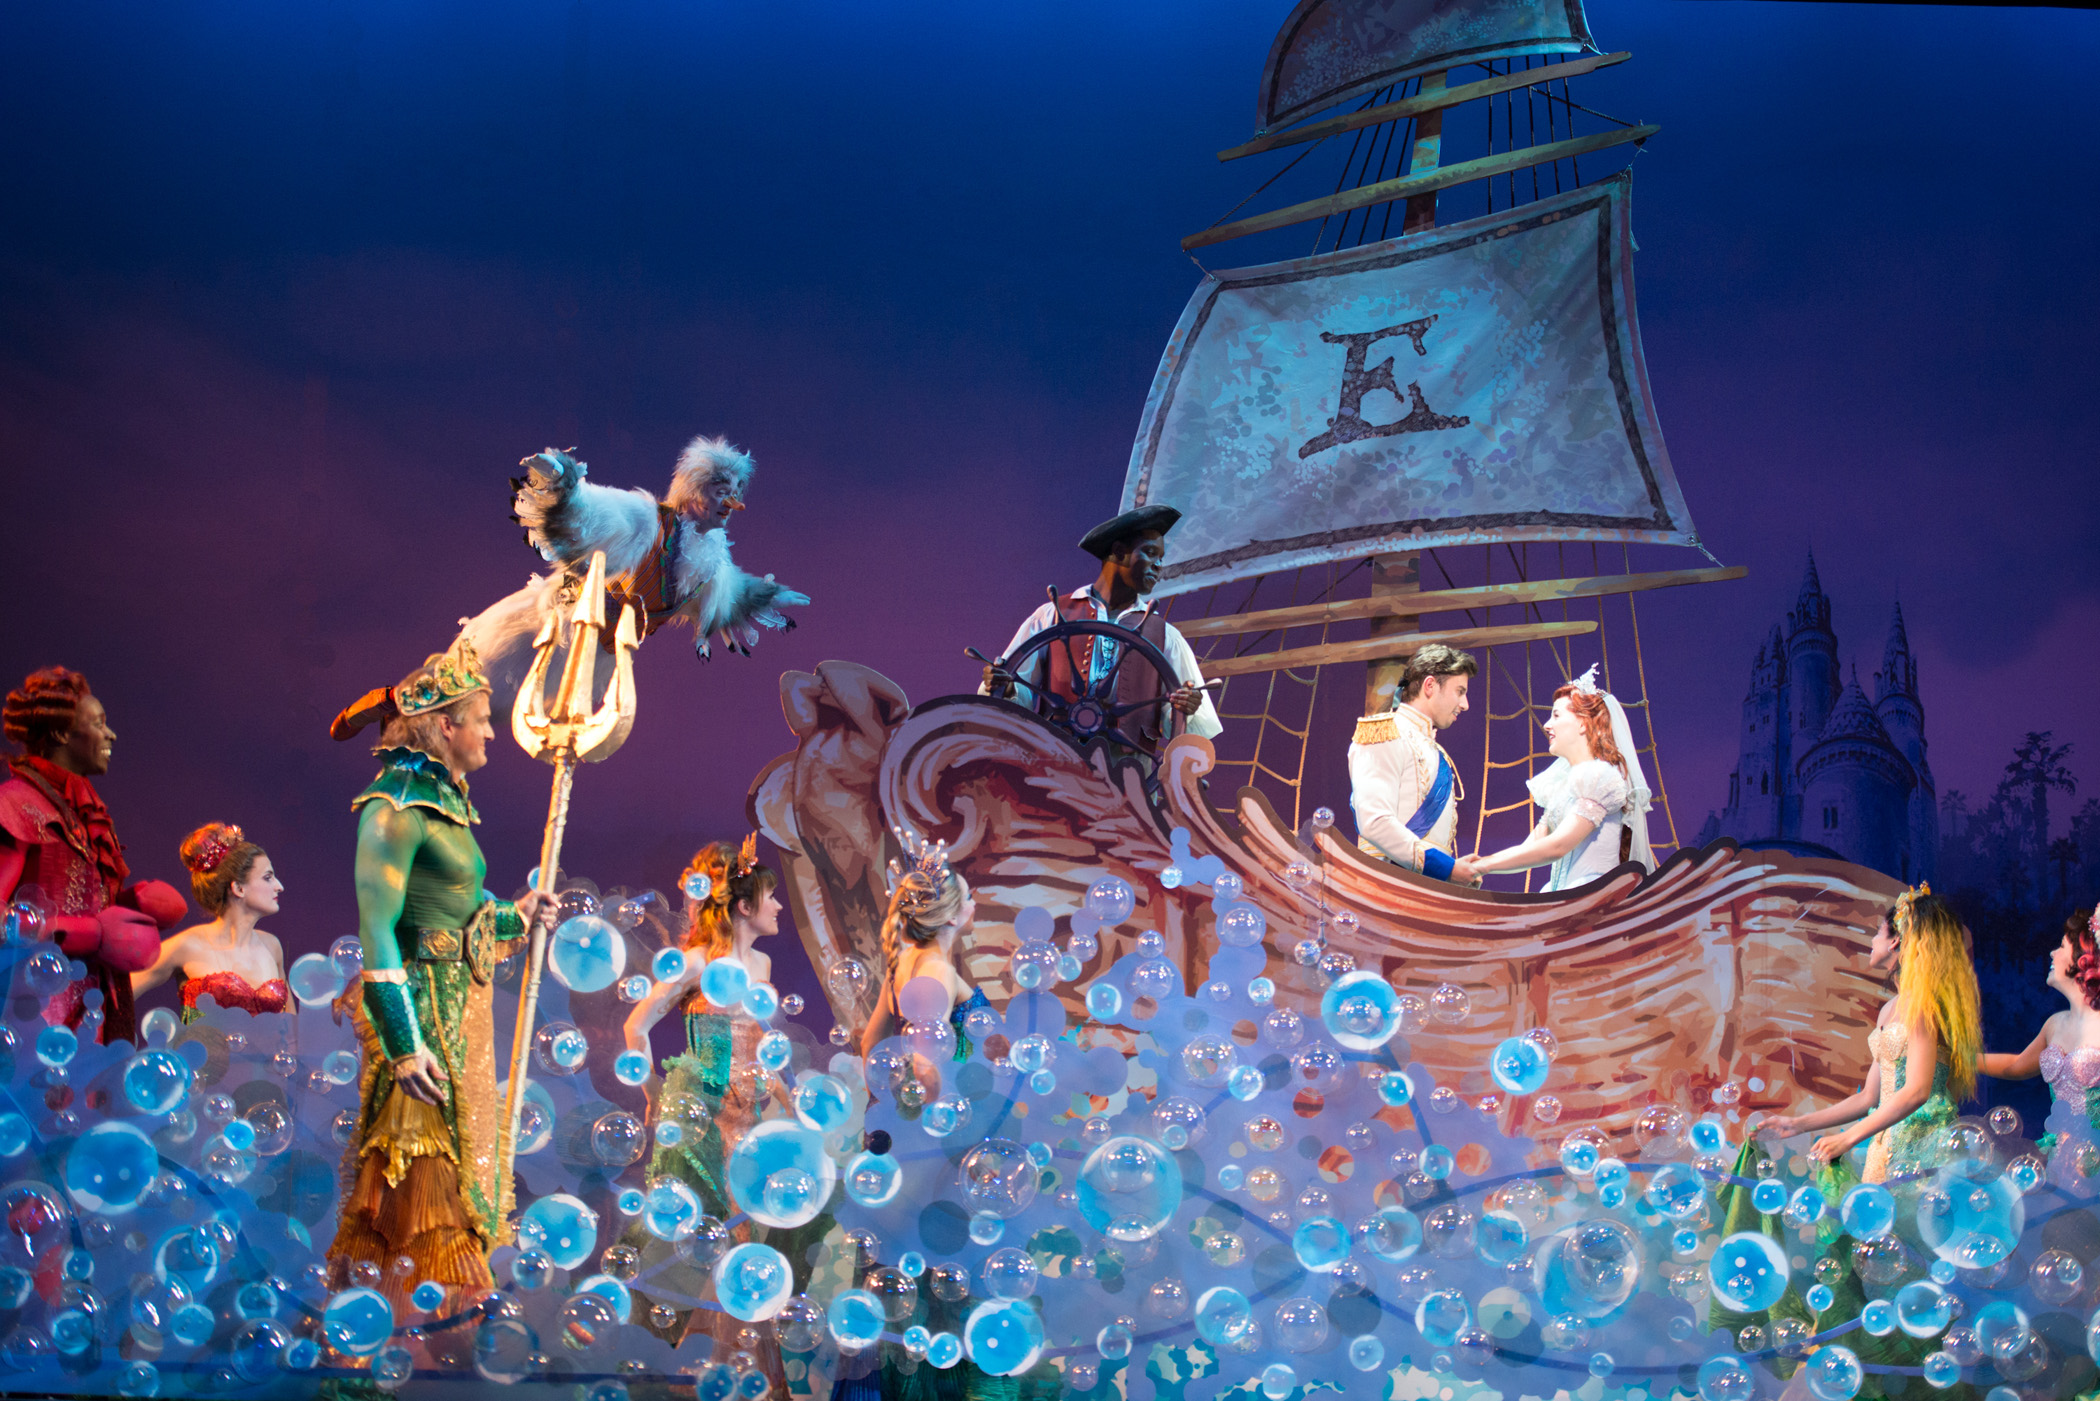 Disney's 'The Little Mermaid' sets a love story among the waves. photo: Billy Bustamante.